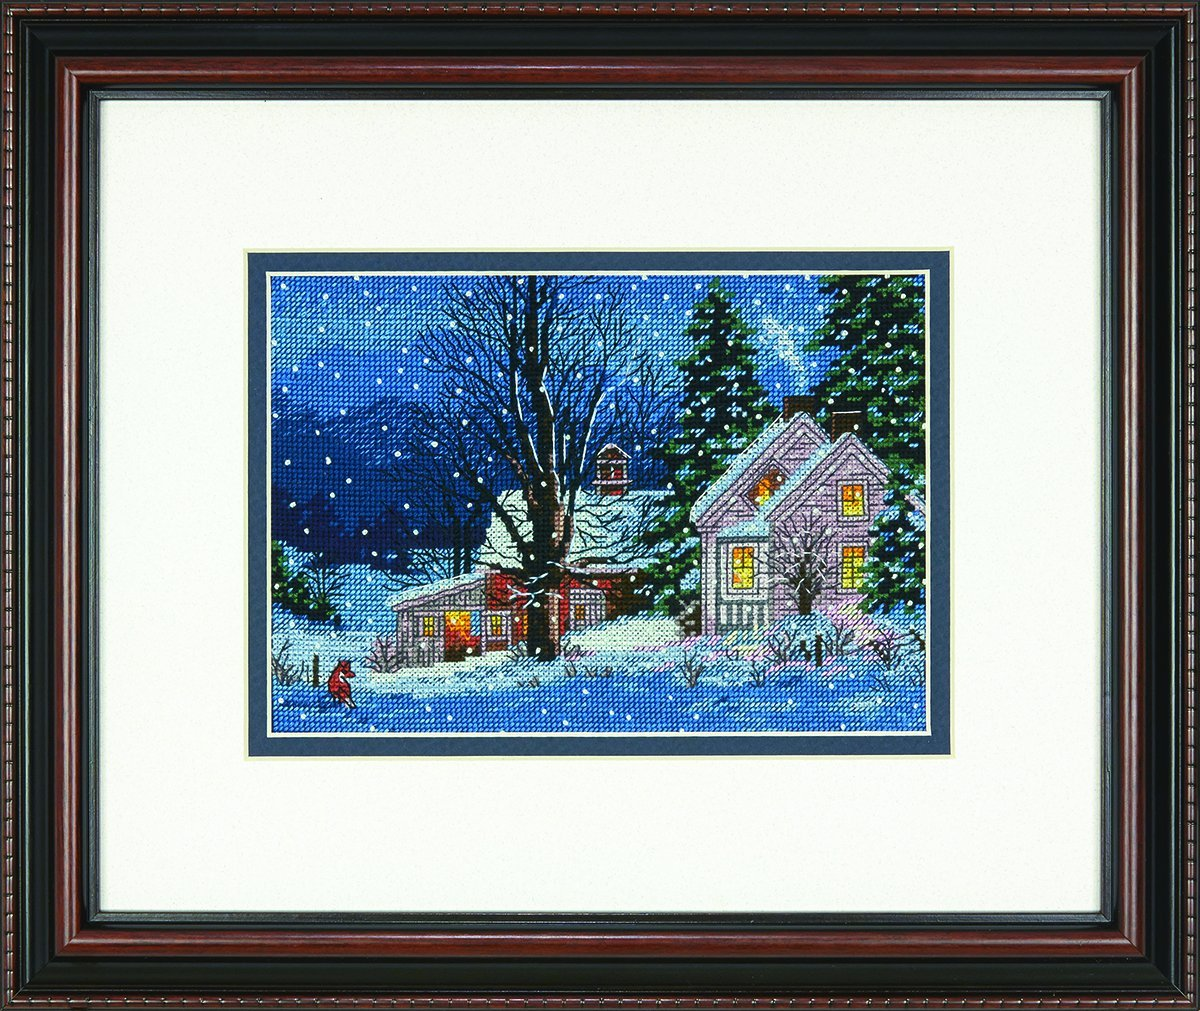 Dimensions Crafts 70-08935 Needlecraft Quiet Night in Counted Cross Stitch IDEAL DESIGN ENTERPRISES CO. LTD